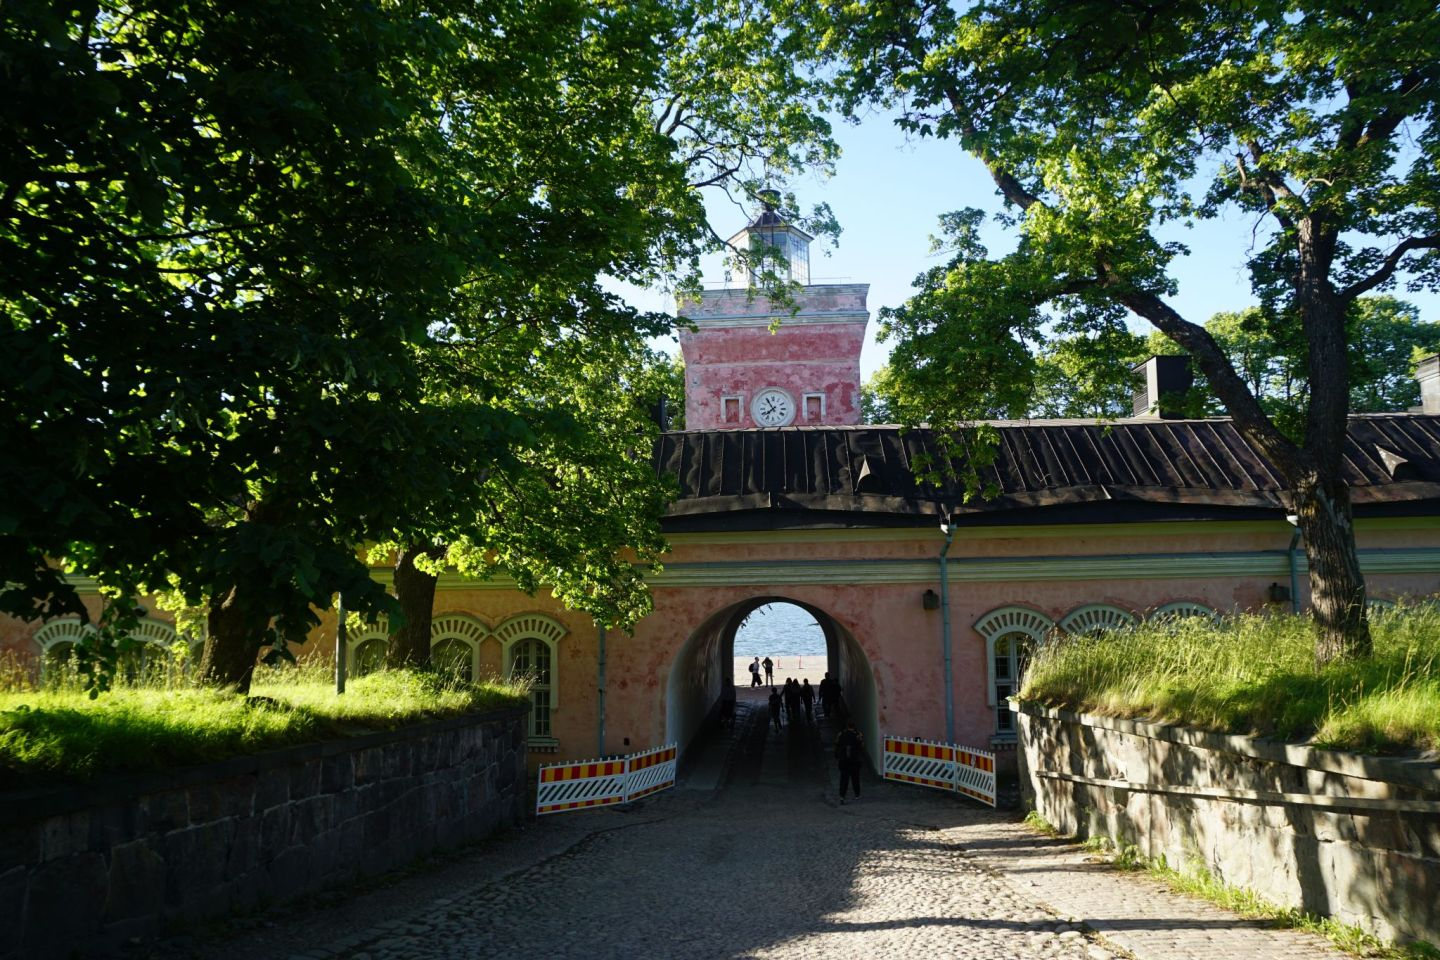 Suomenlinna is home to many beautiful historical buildings